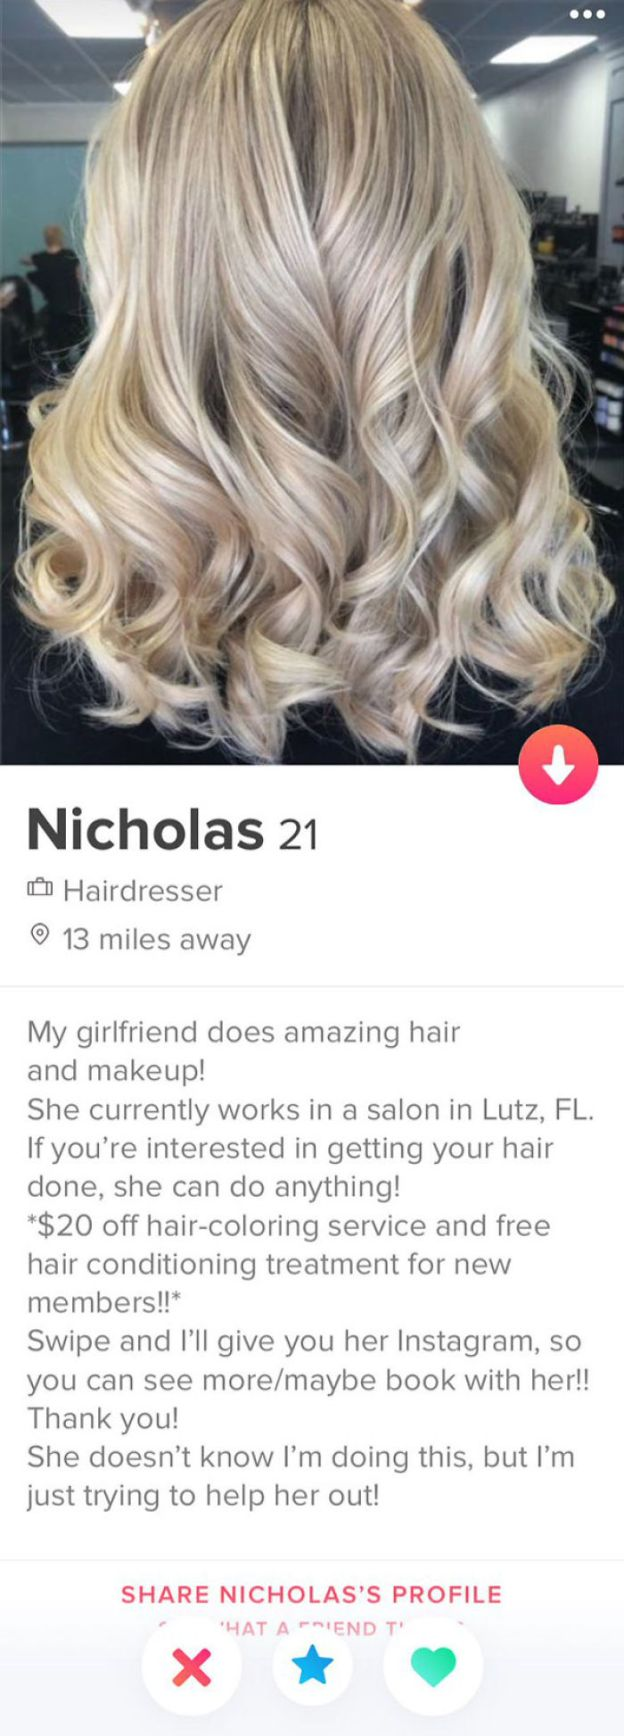 hilarious-tinder-bios-270-5bc886397a42f__700 20+ Funny Tinder Profiles That Will Make You Look Twice (New Pics) Design Random